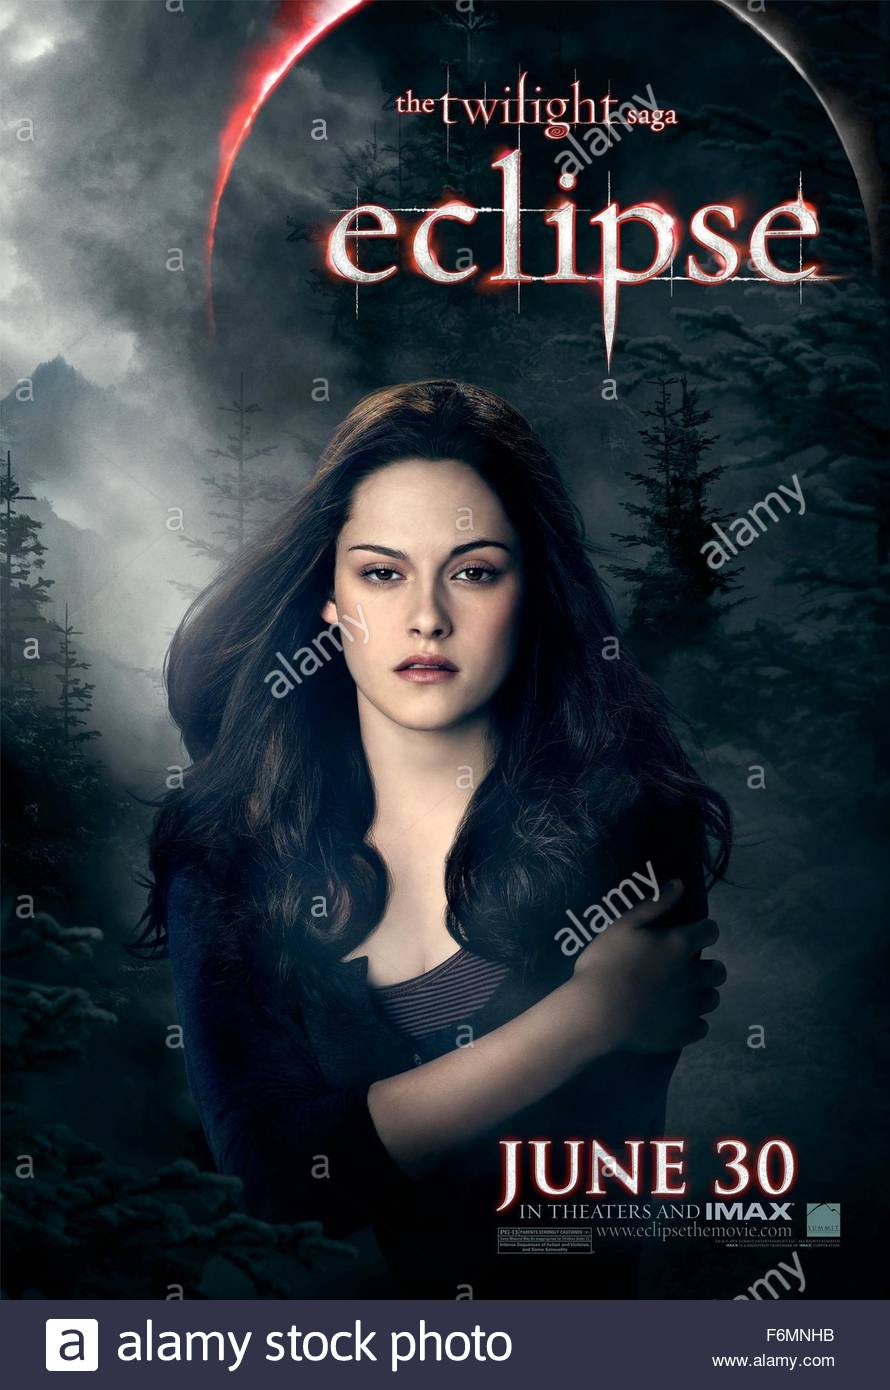 Twilight movies release dates in Melbourne